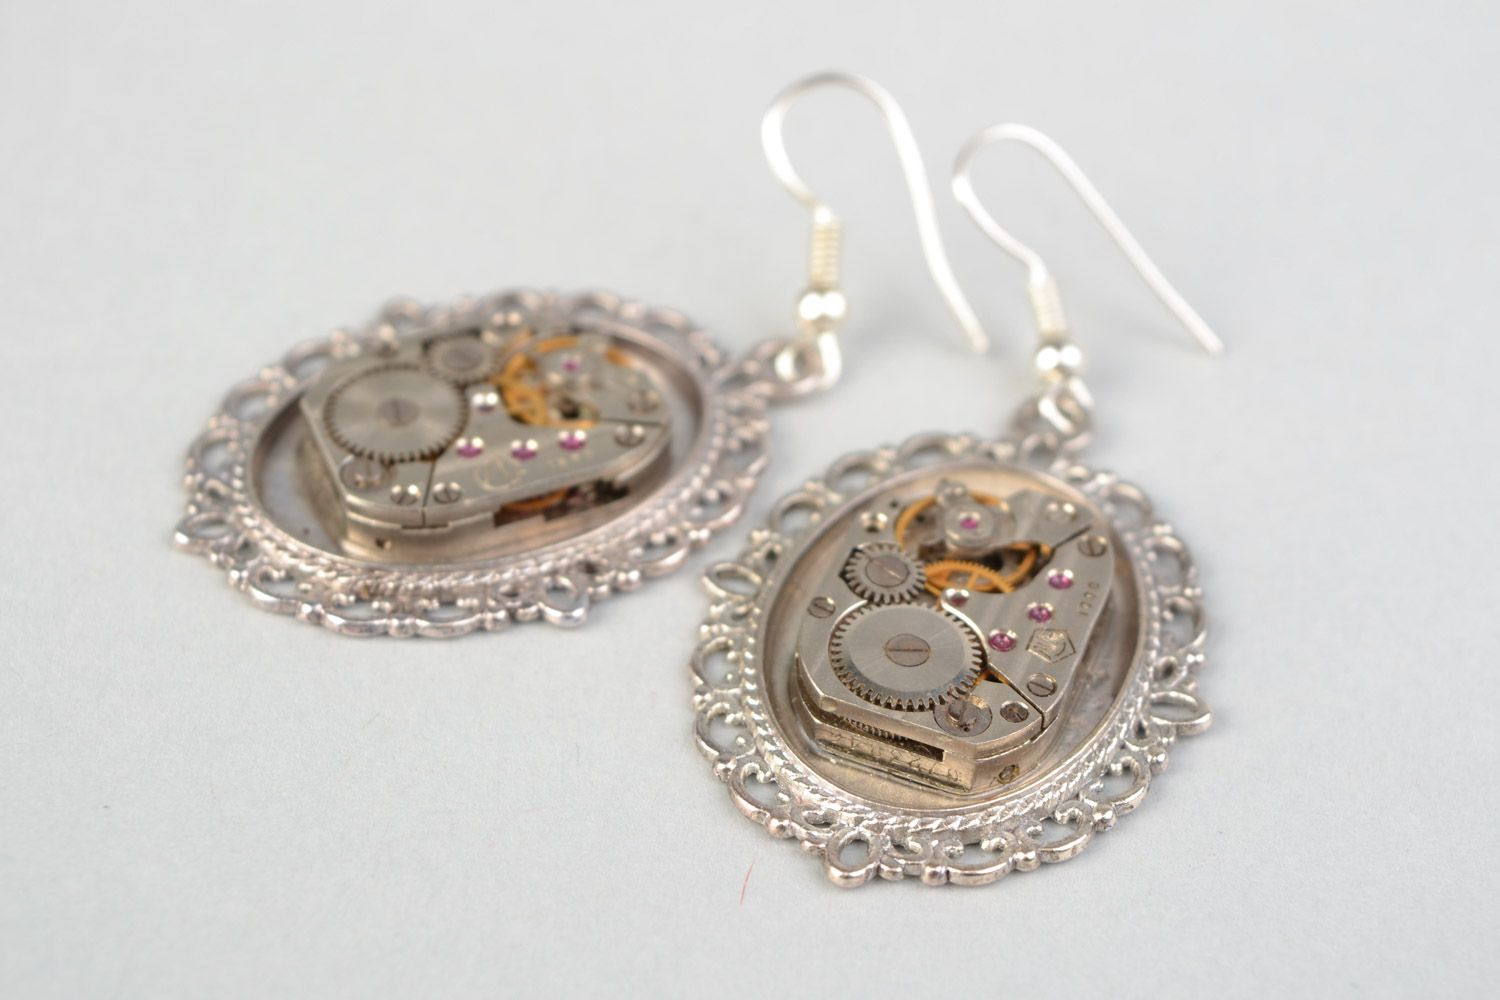 steampunk earrings Handmade designer steampunk earrings with lace metal basis and clock mechanism - MADEheart.com